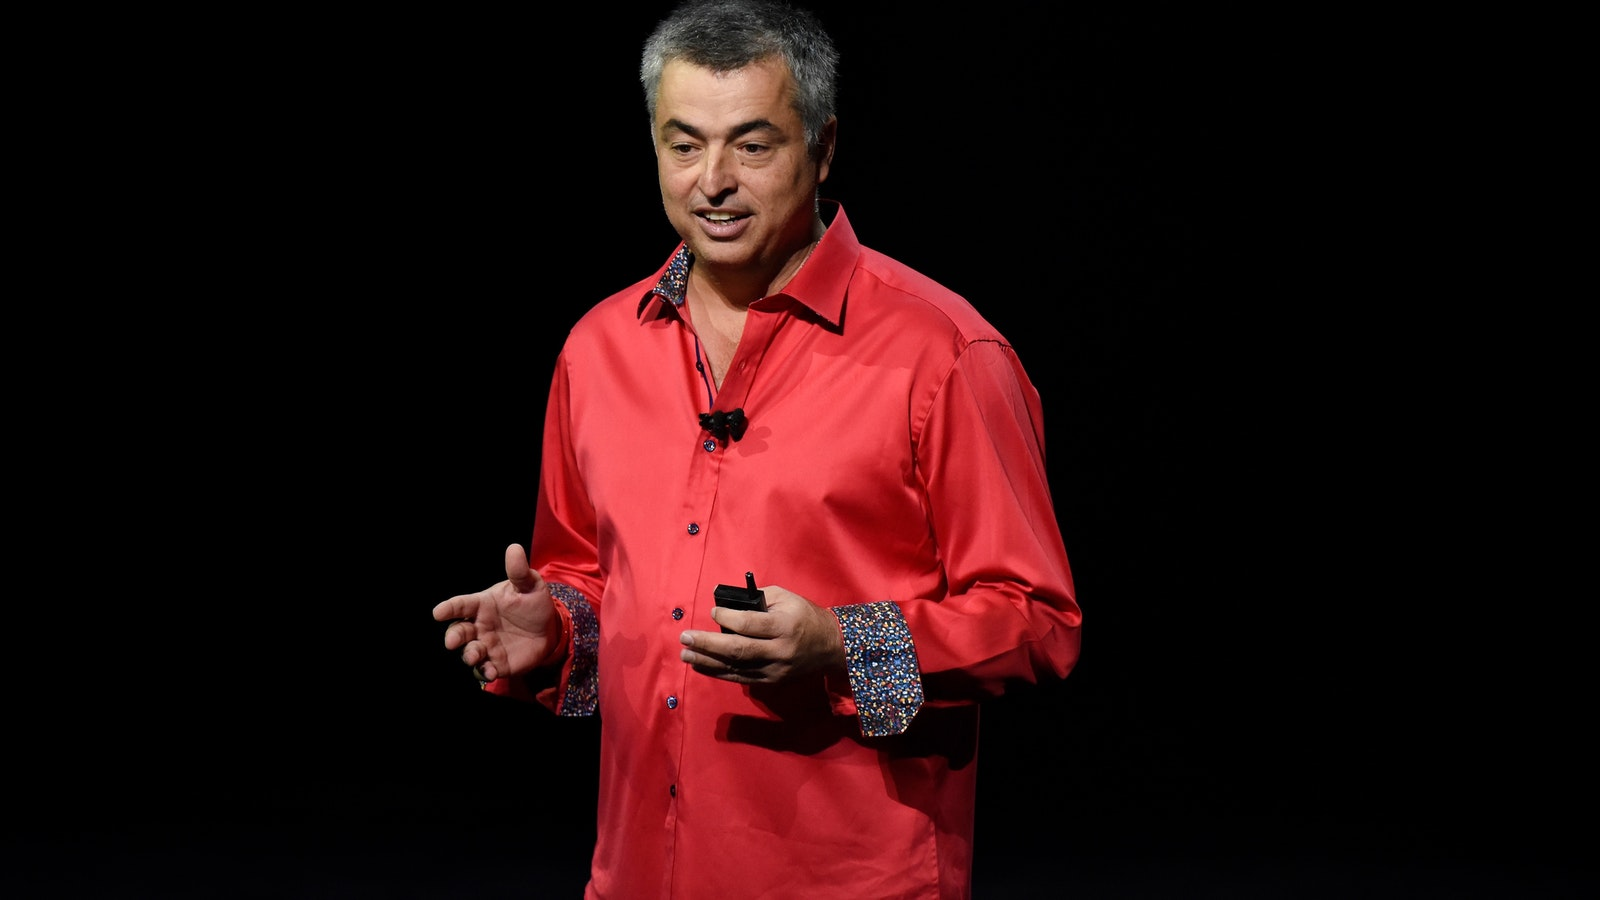 Eddy Cue. Photo by Bloomberg.